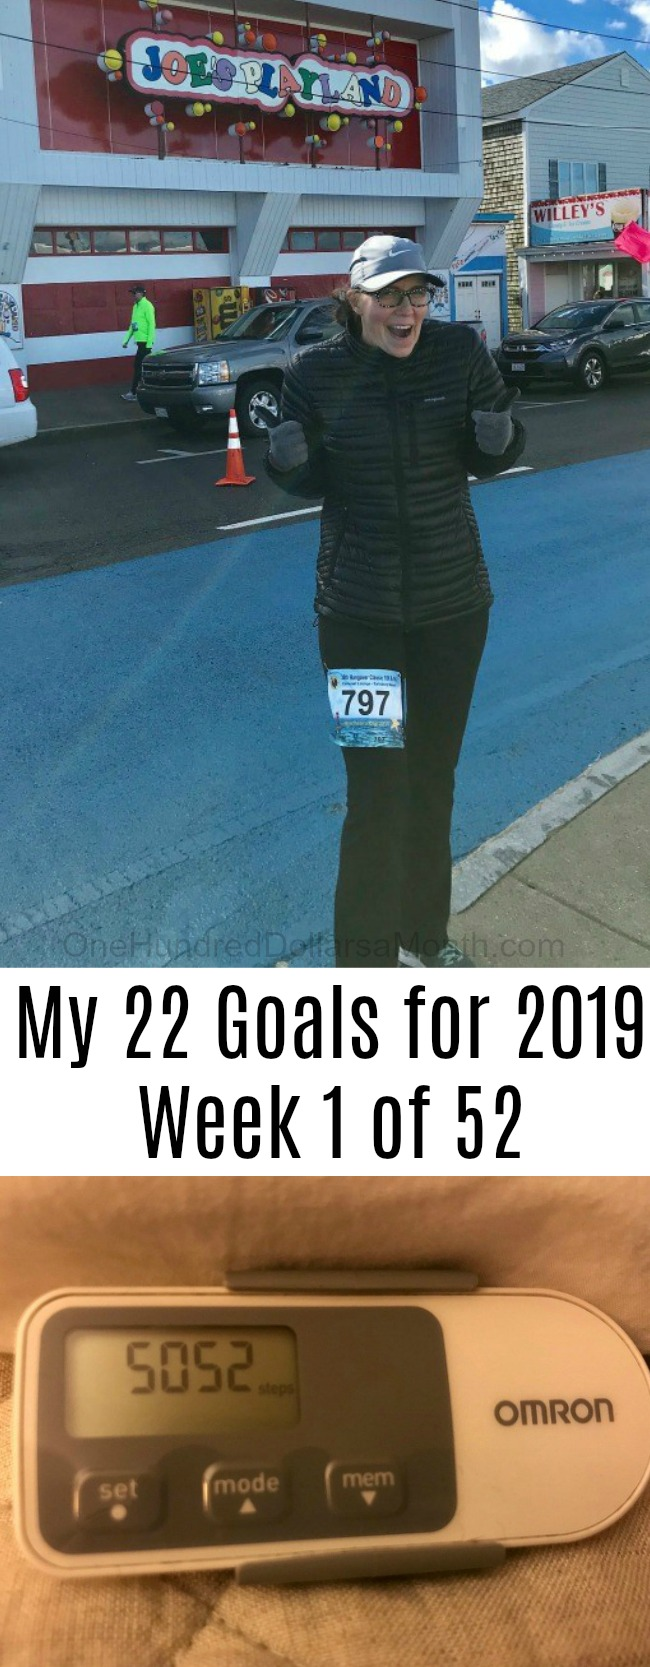 My 22 Goals for 2019 – Week 1 of 52